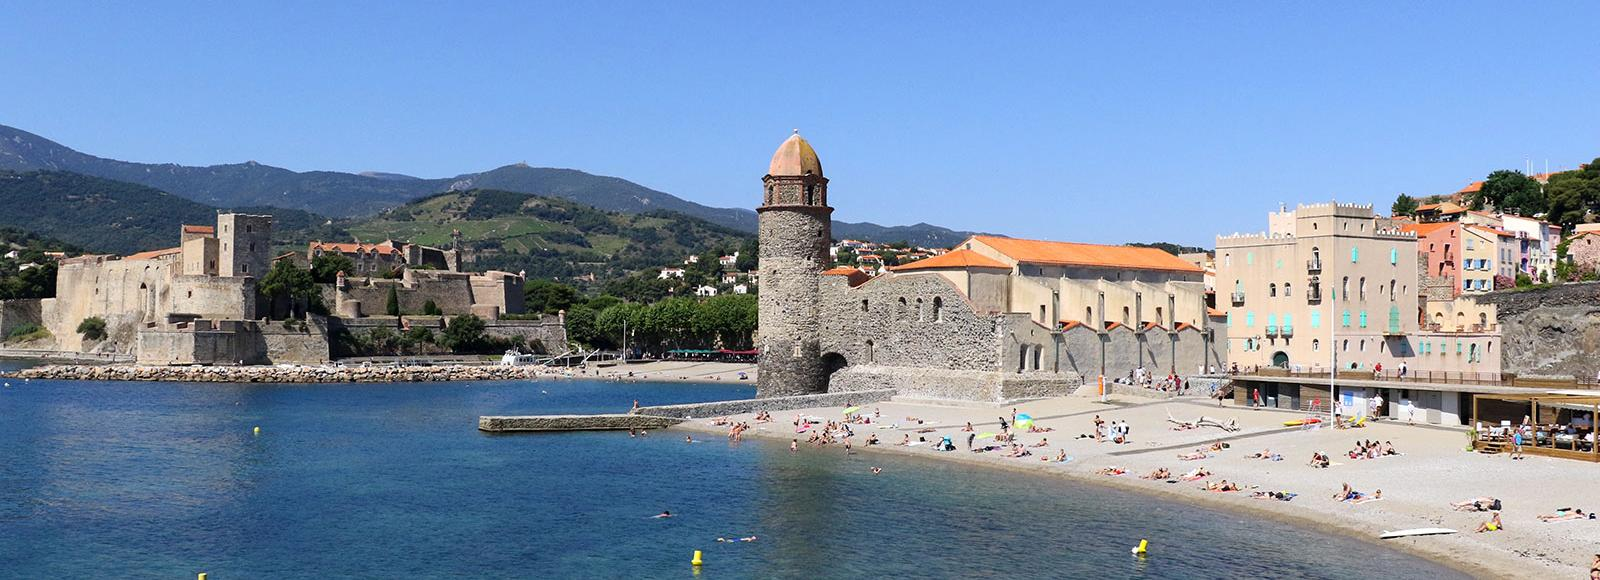 Plage Saint Vincent à Collioure